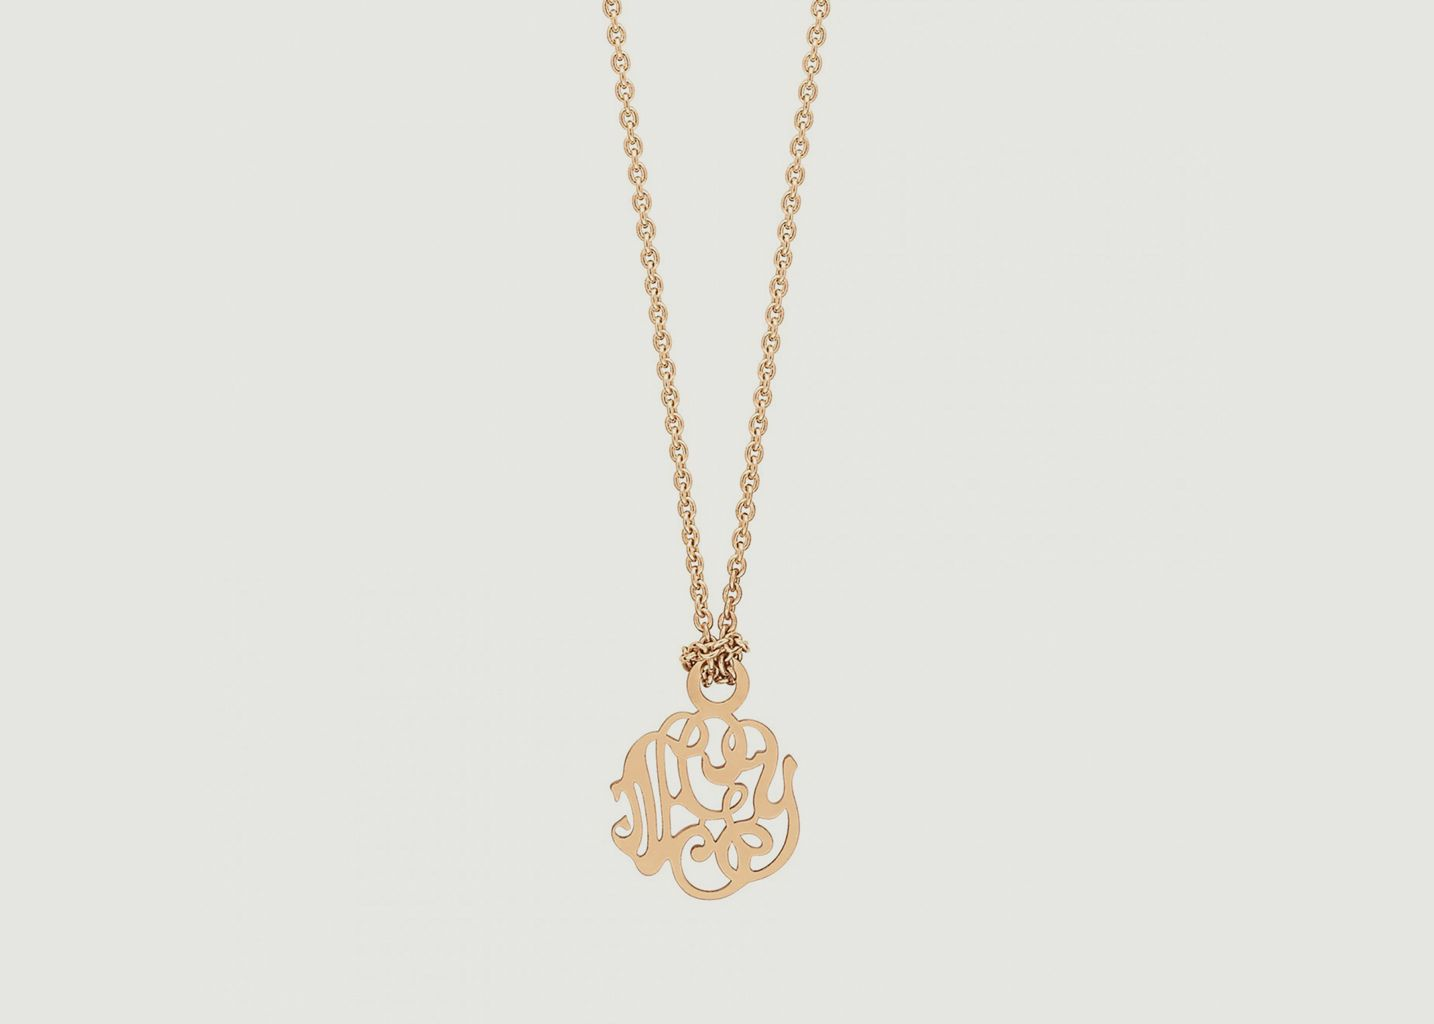 Monogram Necklace Pink Gold Ginette Ny